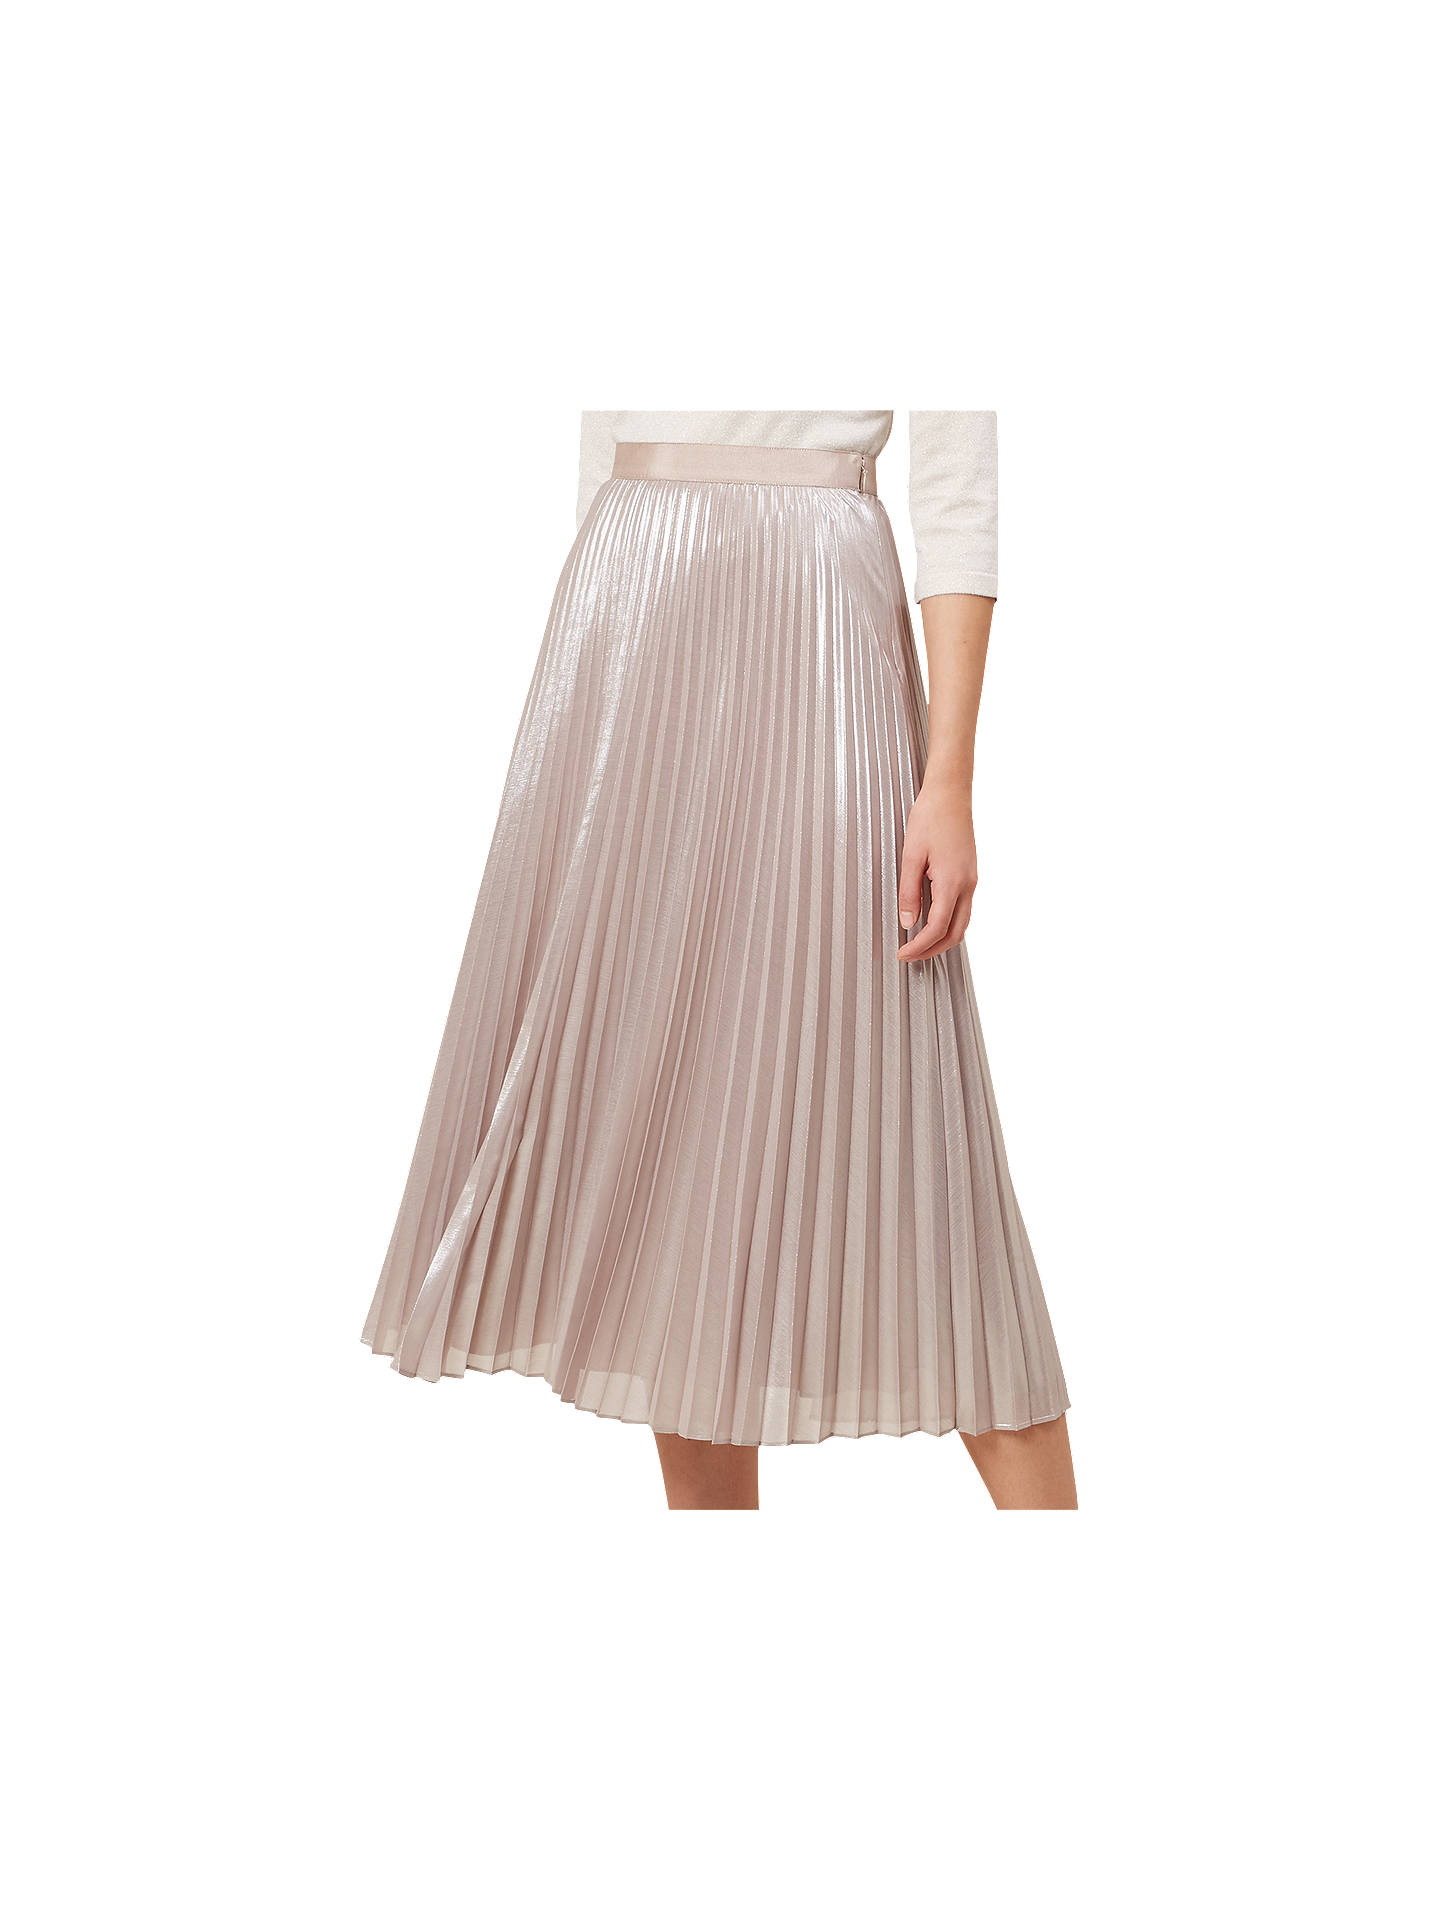 Buy Hobbs Jade Skirt, Oyster Gold, 6 Online at johnlewis.com